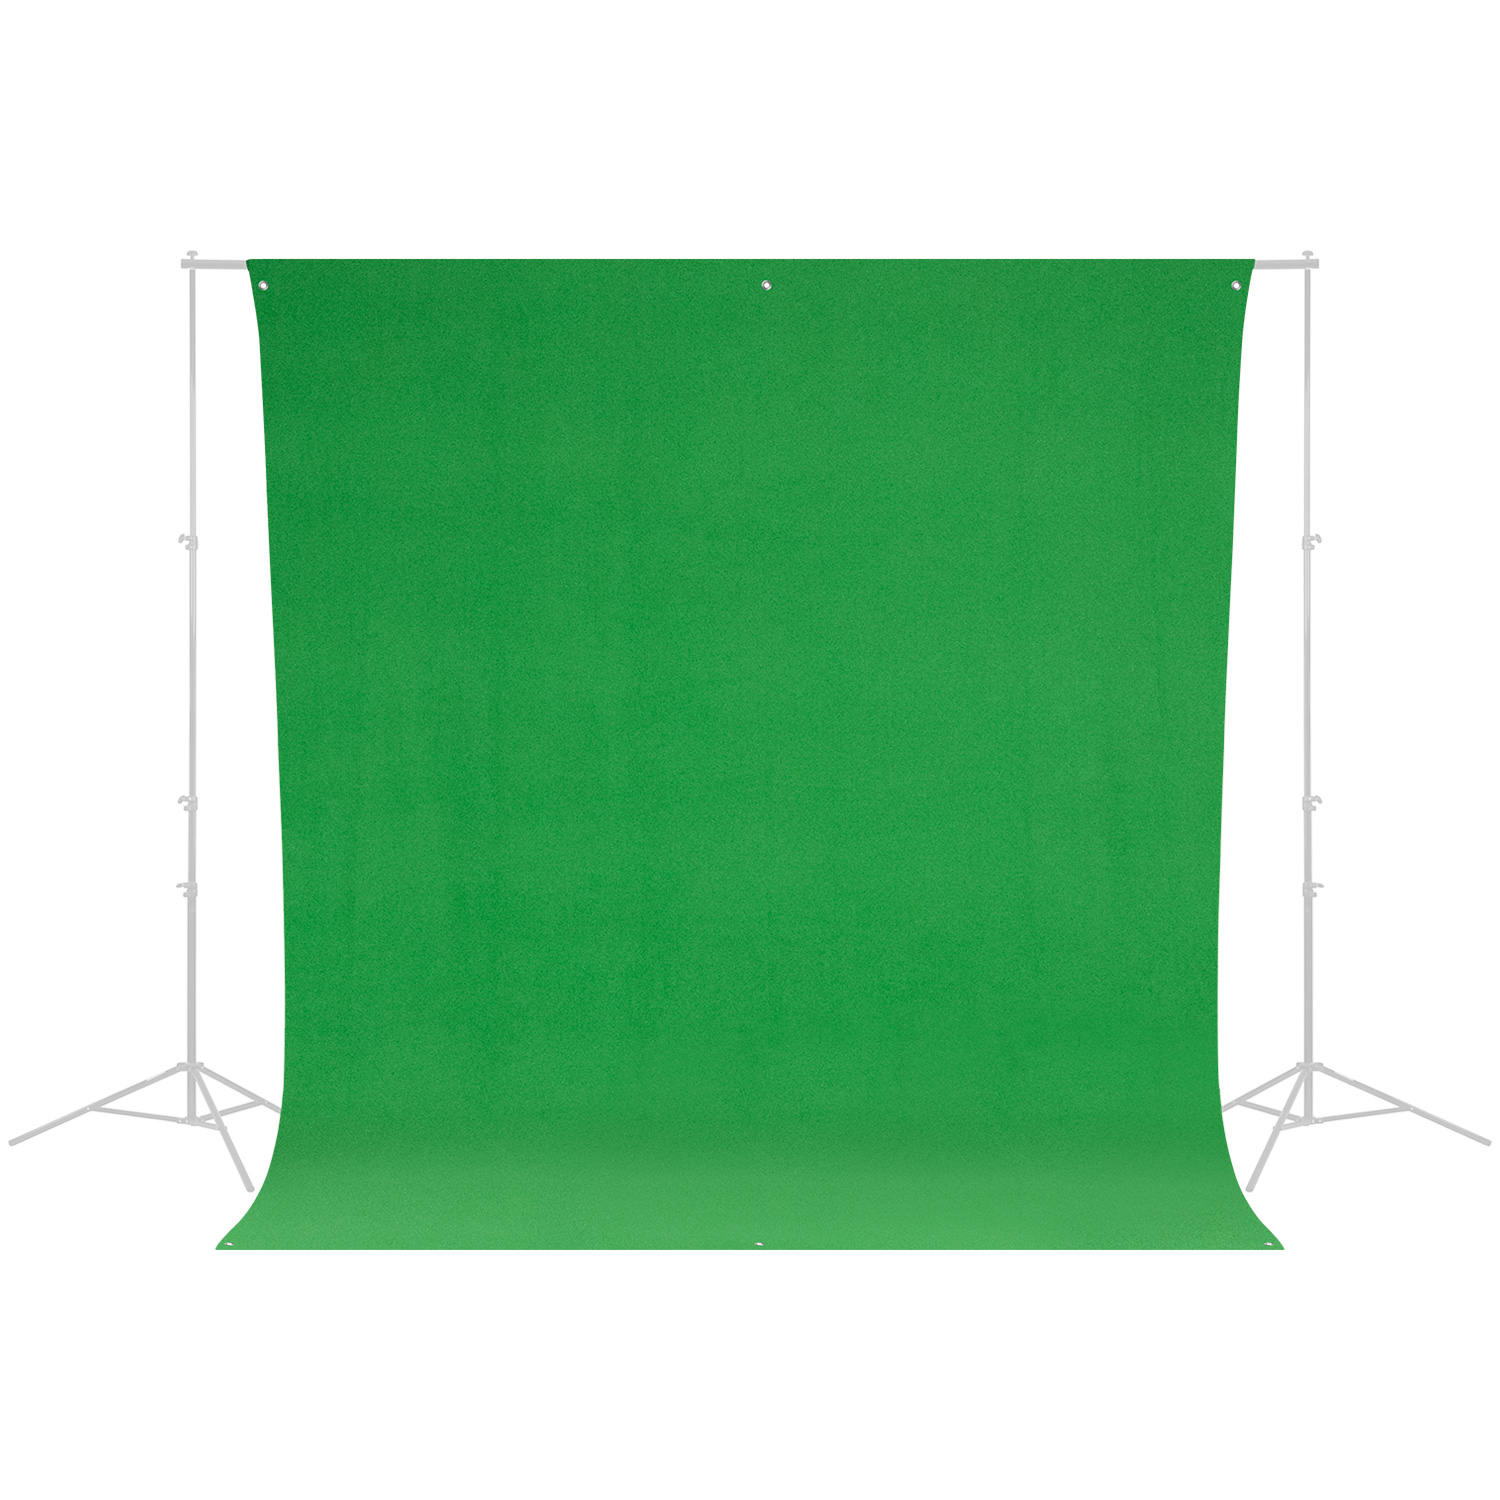 Wrinkle-Resistant Chroma-Key Green/Blue Screen Backdrop